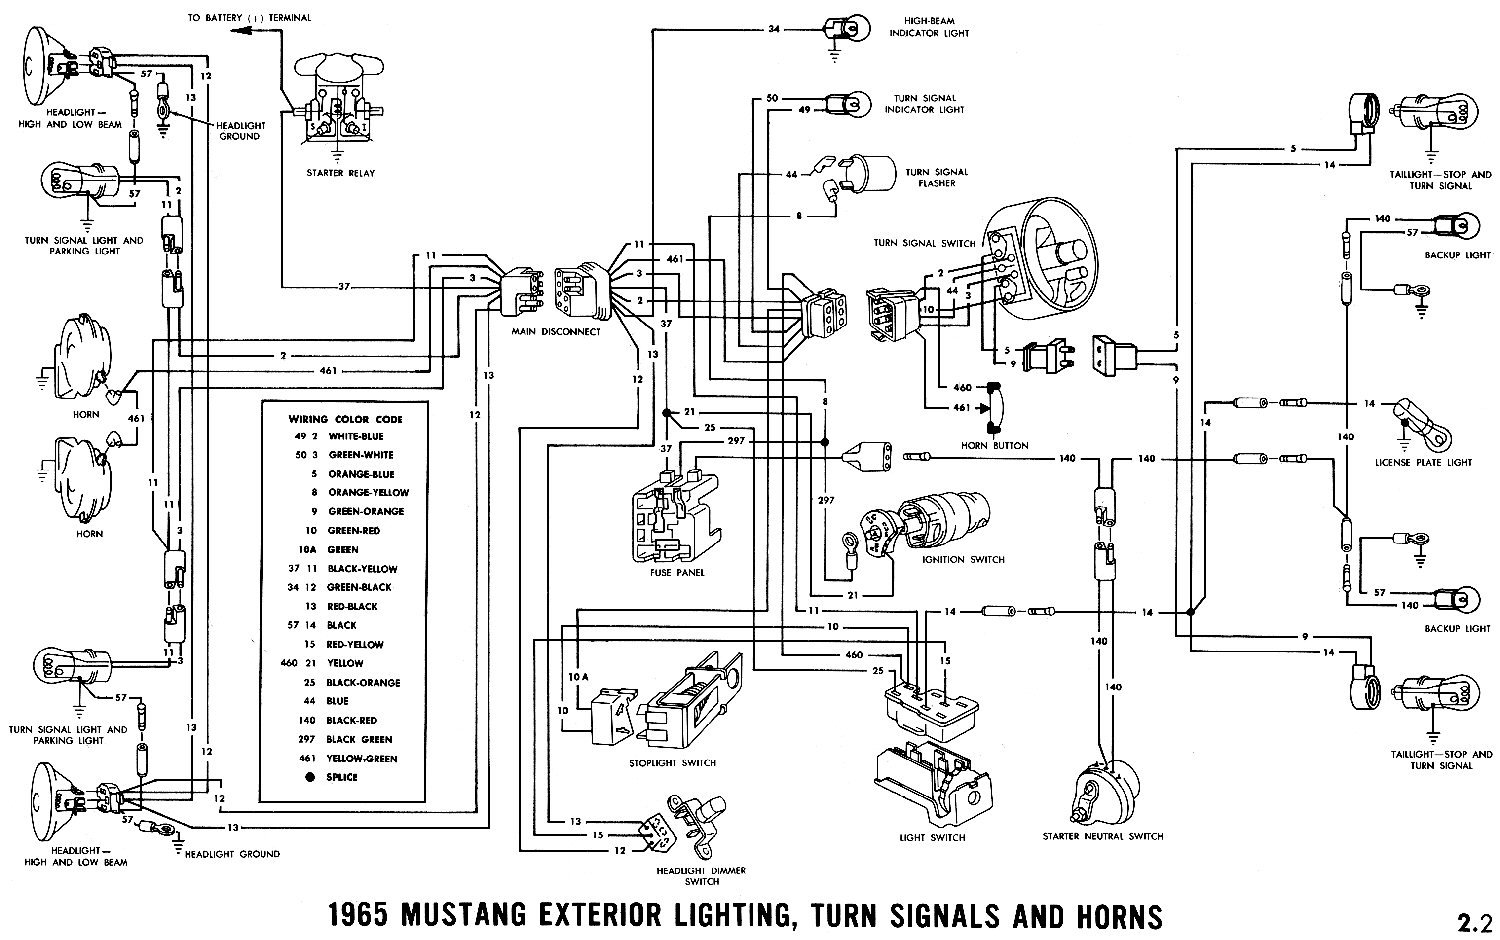 [FPWZ_2684]  Horn works but not really | Ford Mustang Forum | 1989 Ford Mustang Horn Wiring Diagram |  | All Ford Mustangs